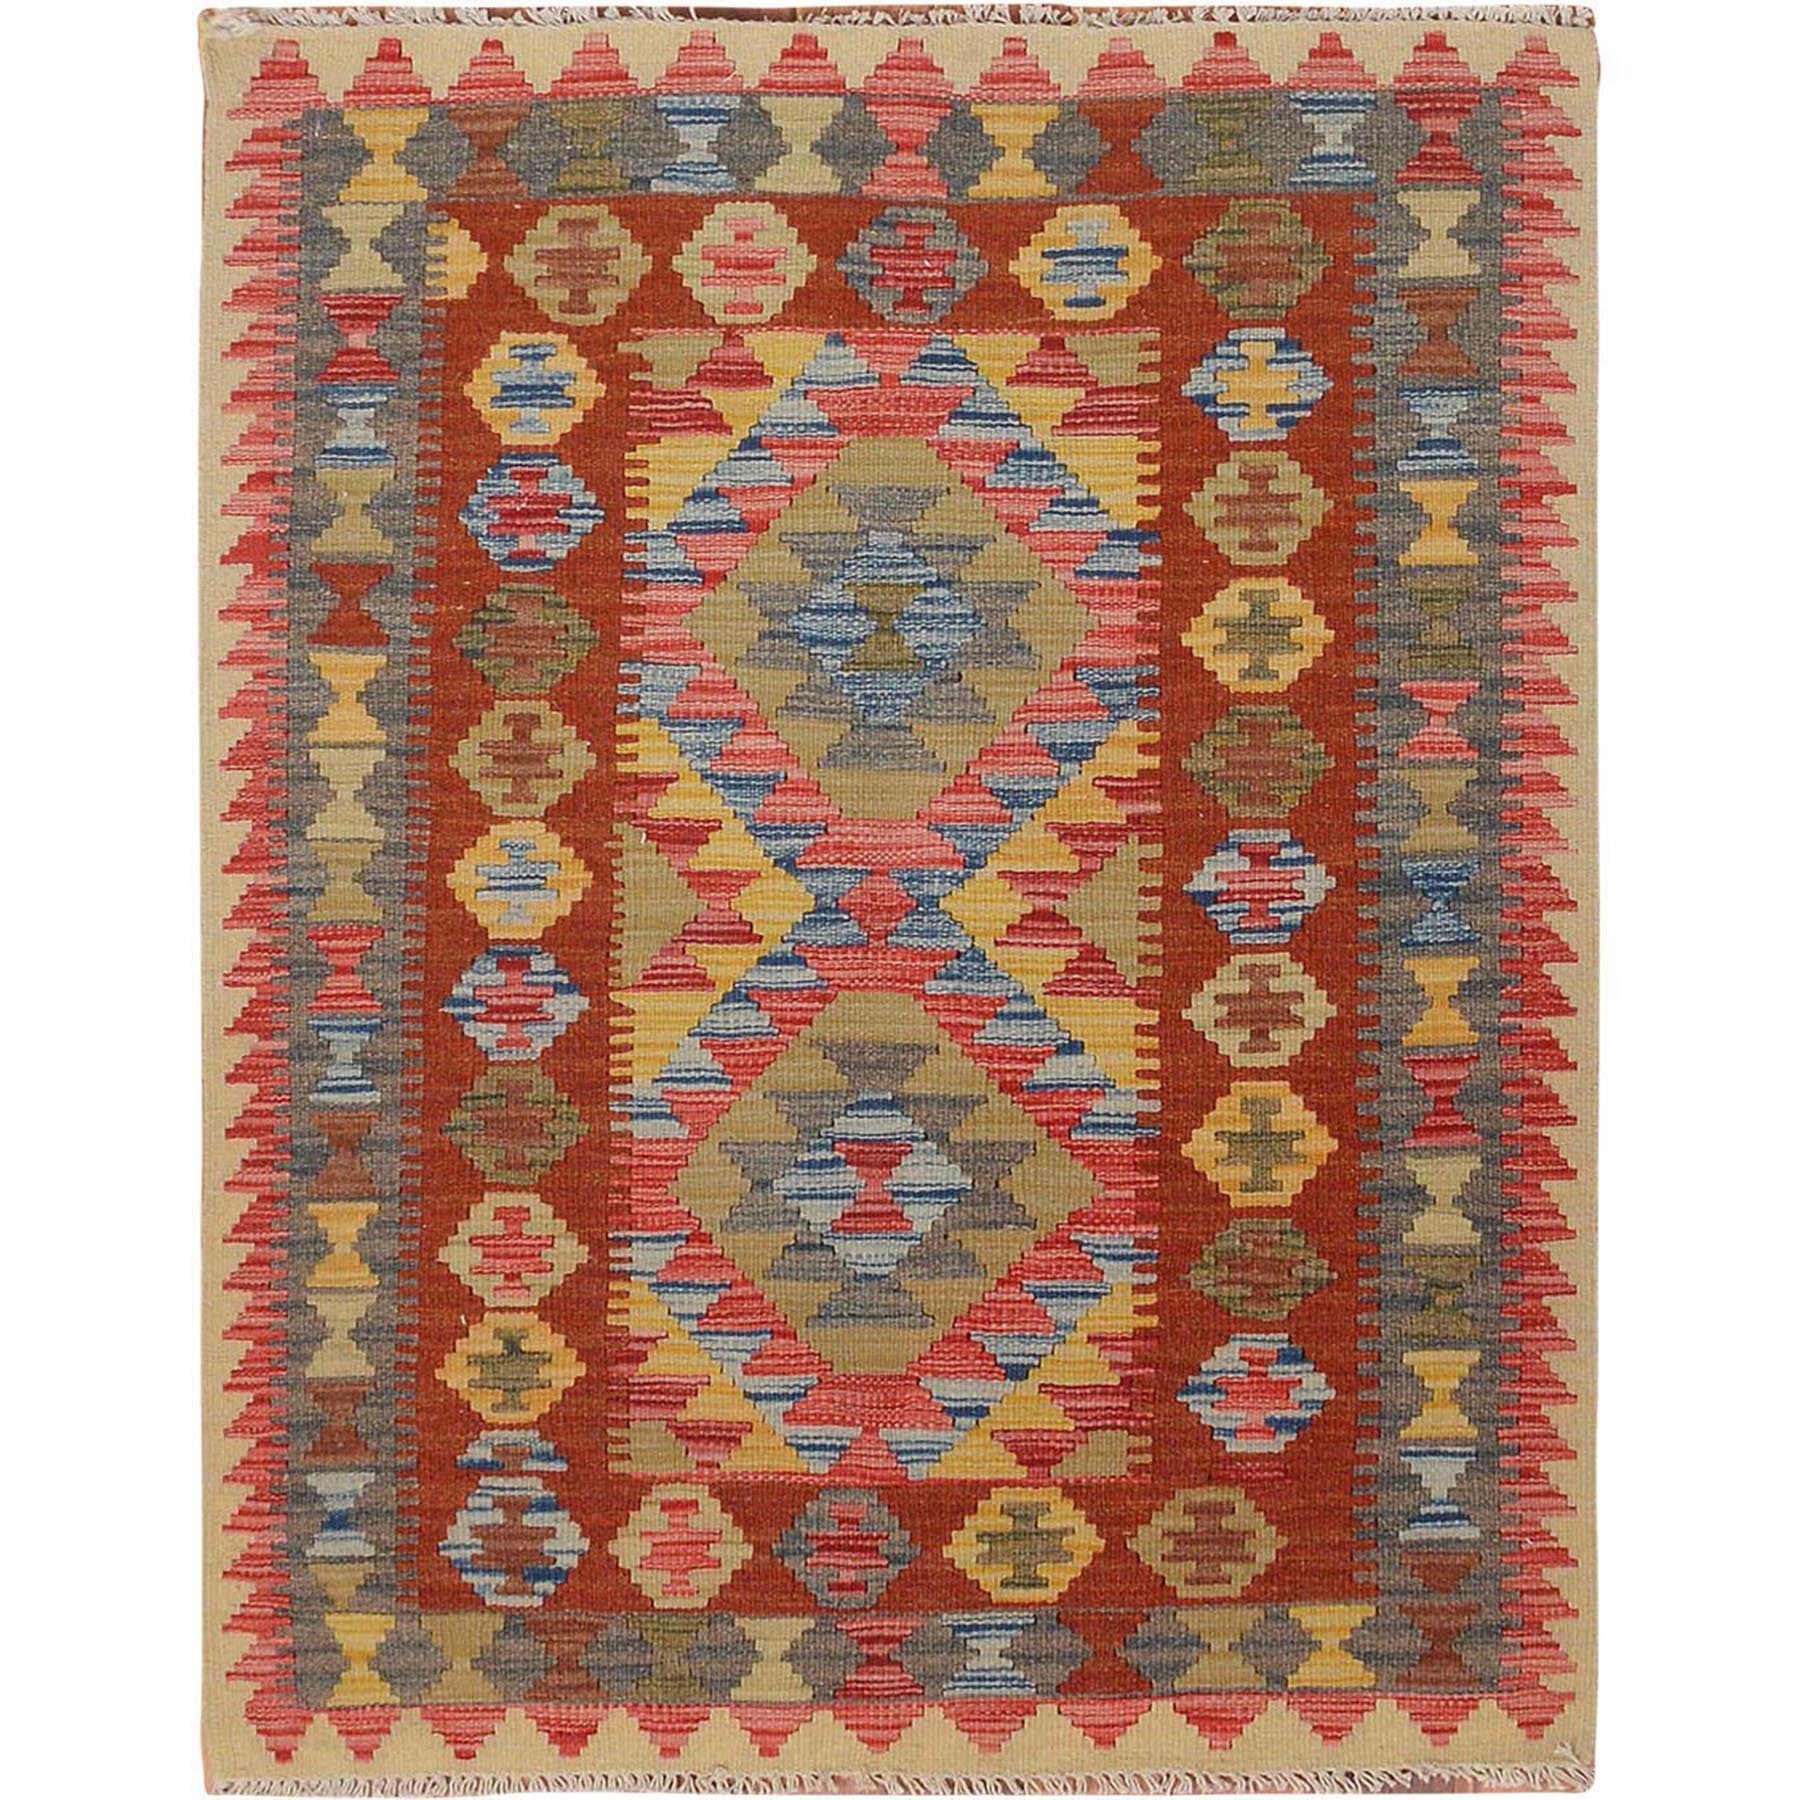 3'x4' Colorful Reversible Flat Weave Afghan Kilim Pure Wool Hand Woven Oriental Rug